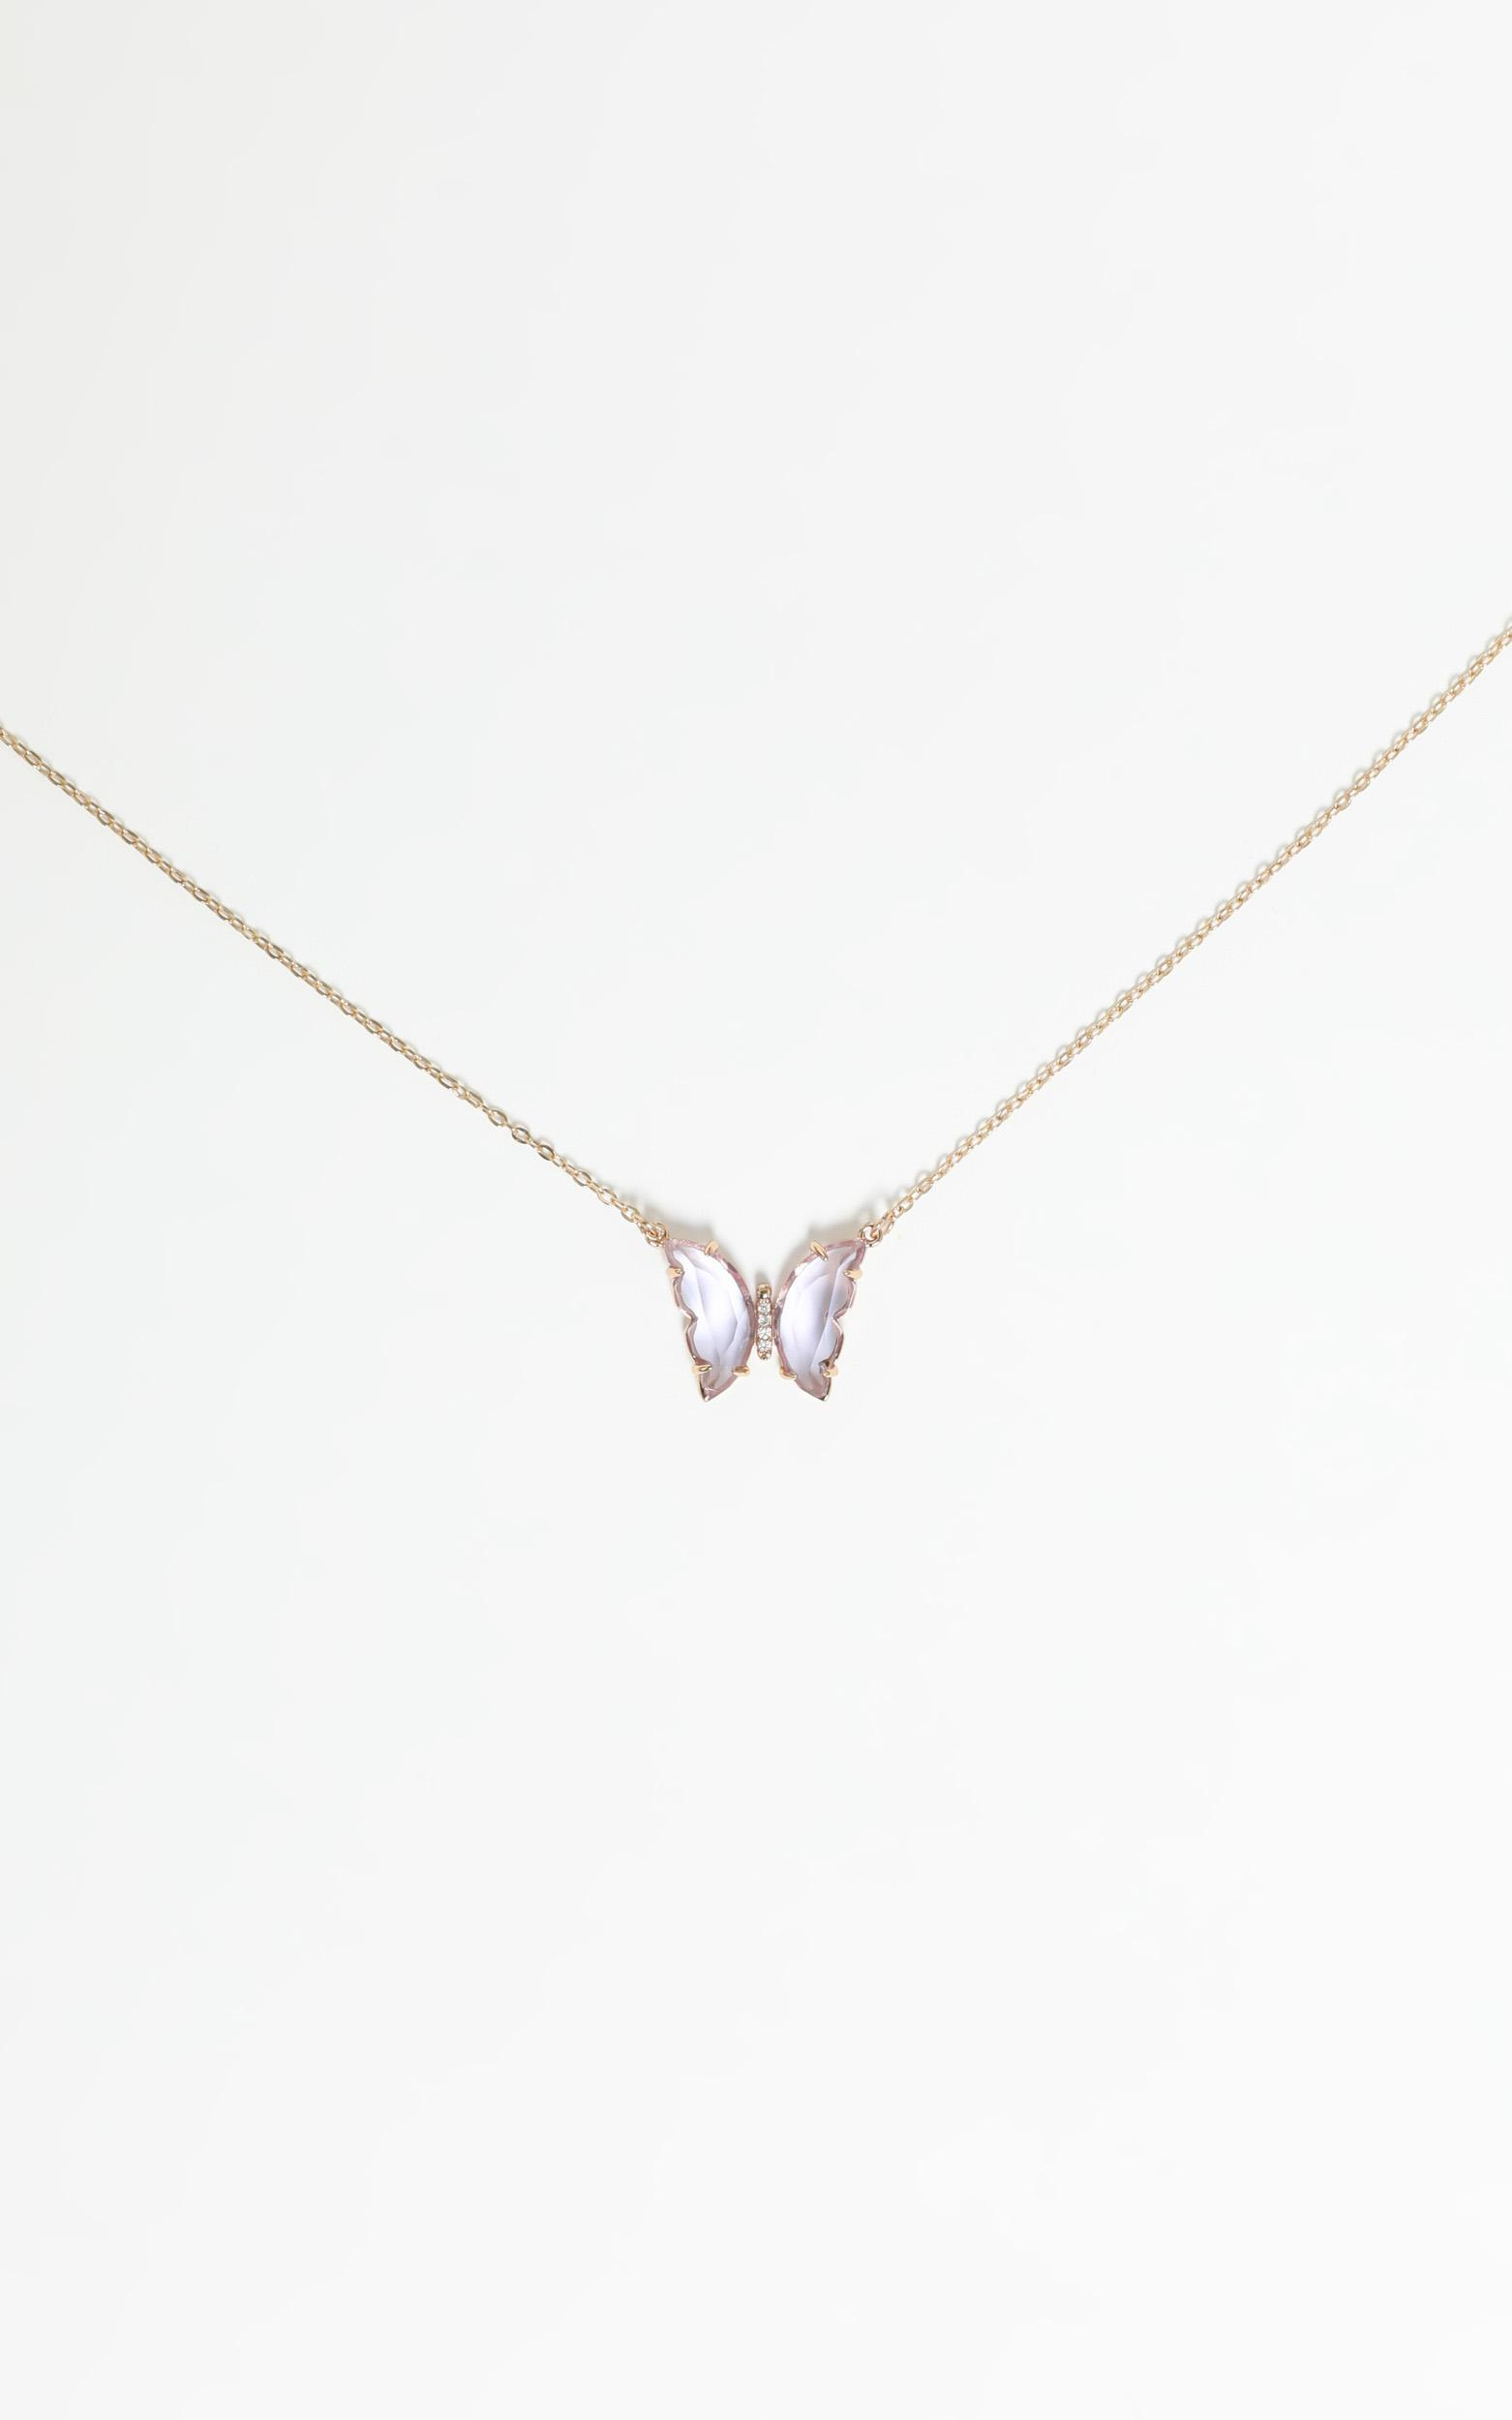 Talulla Necklace in Gold, , hi-res image number null